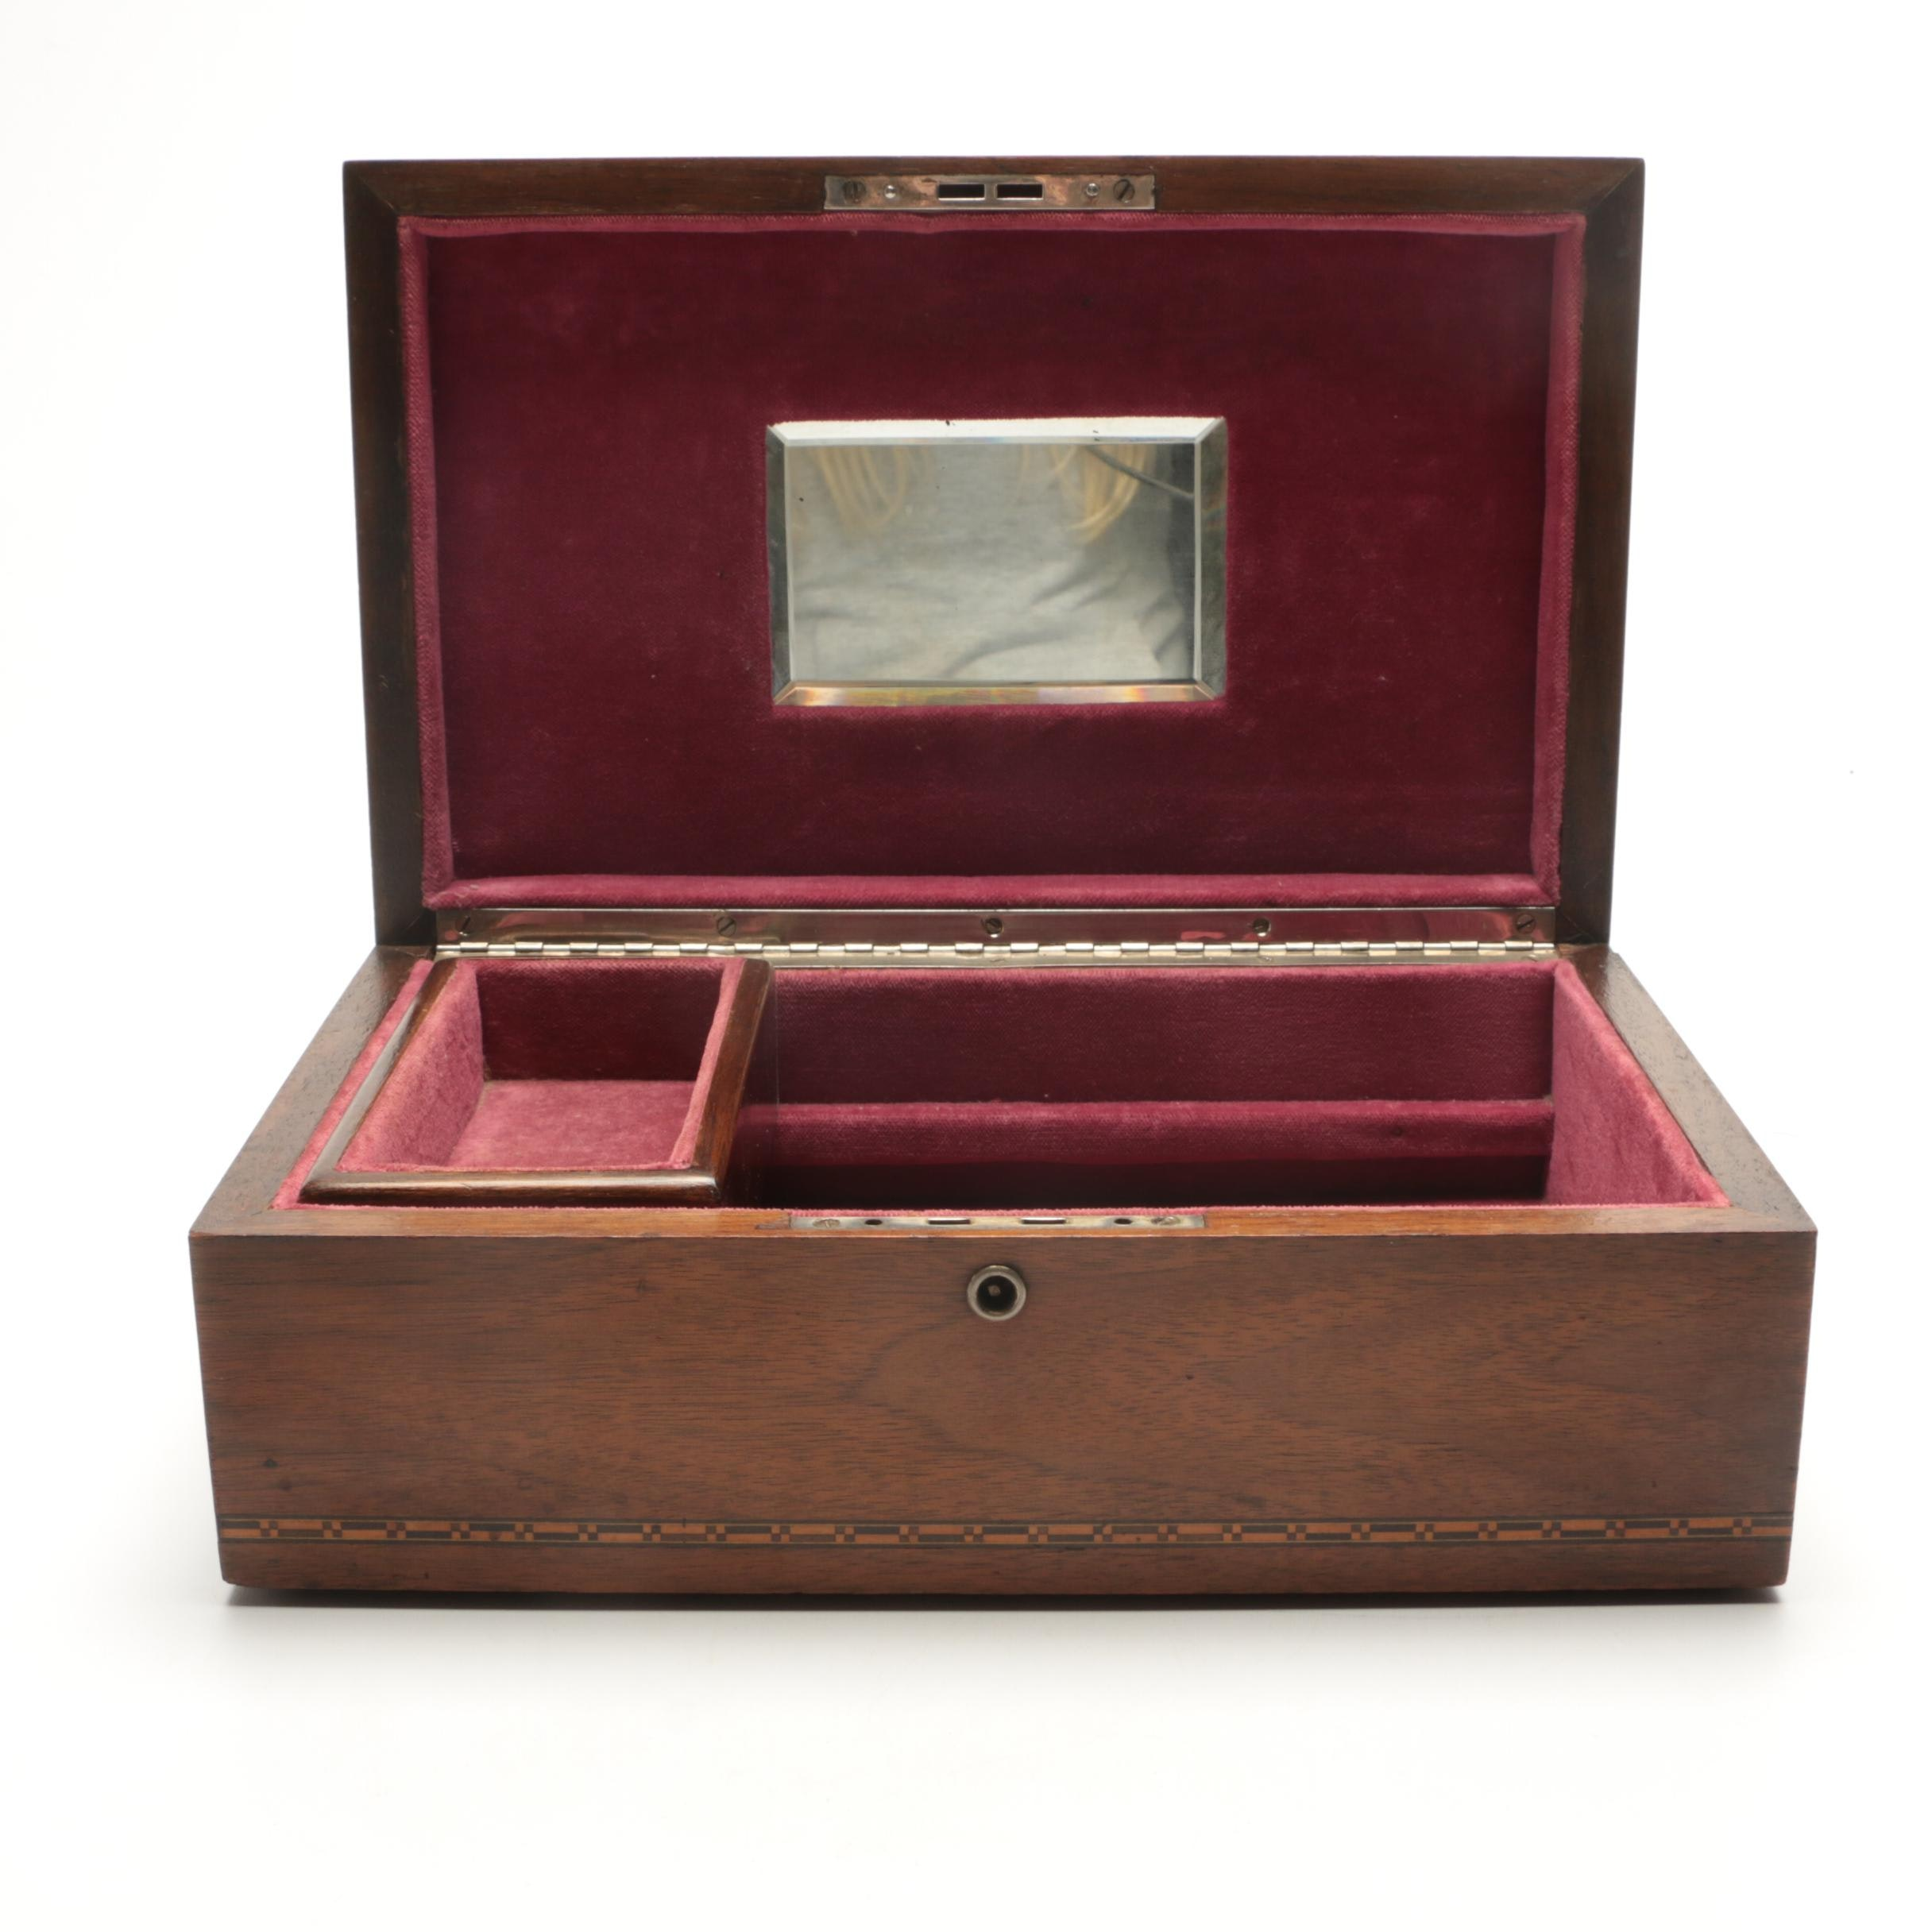 Inlaid Wooden Jewelry Box with Floral Motif